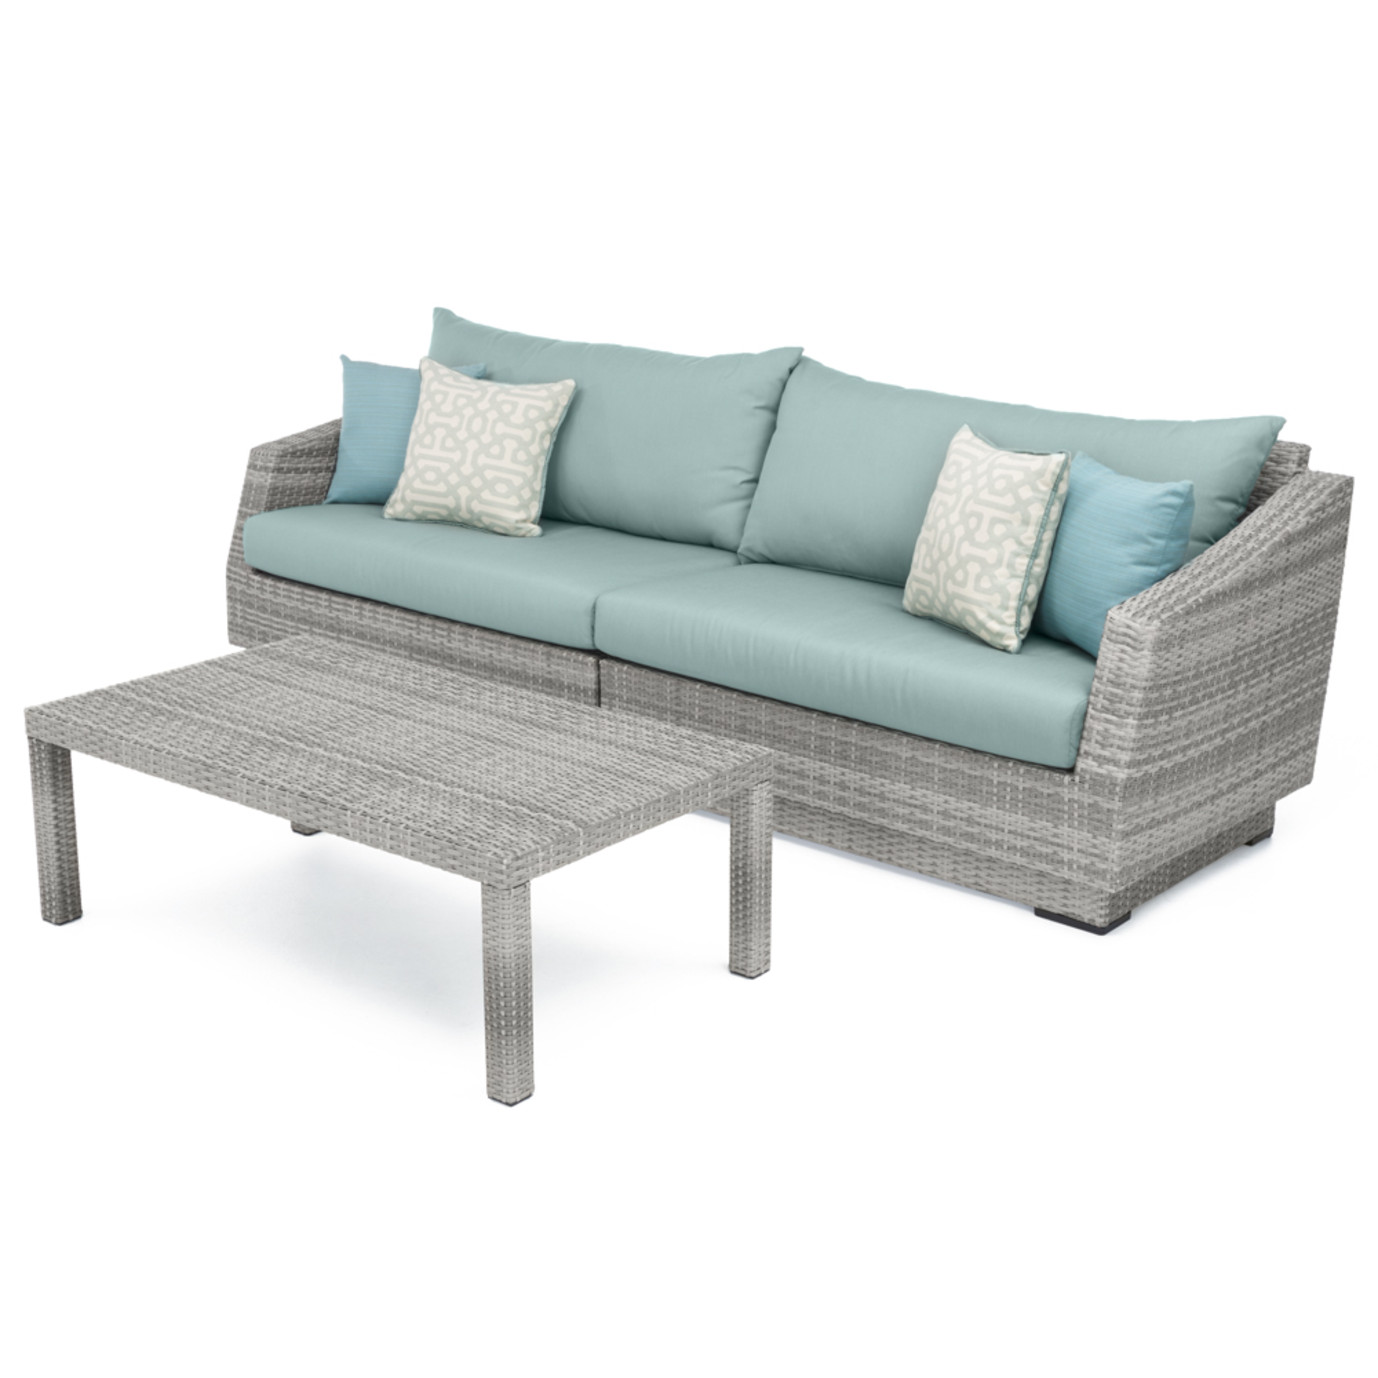 Cannes™ Sofa & Coffee Table - Spa Blue